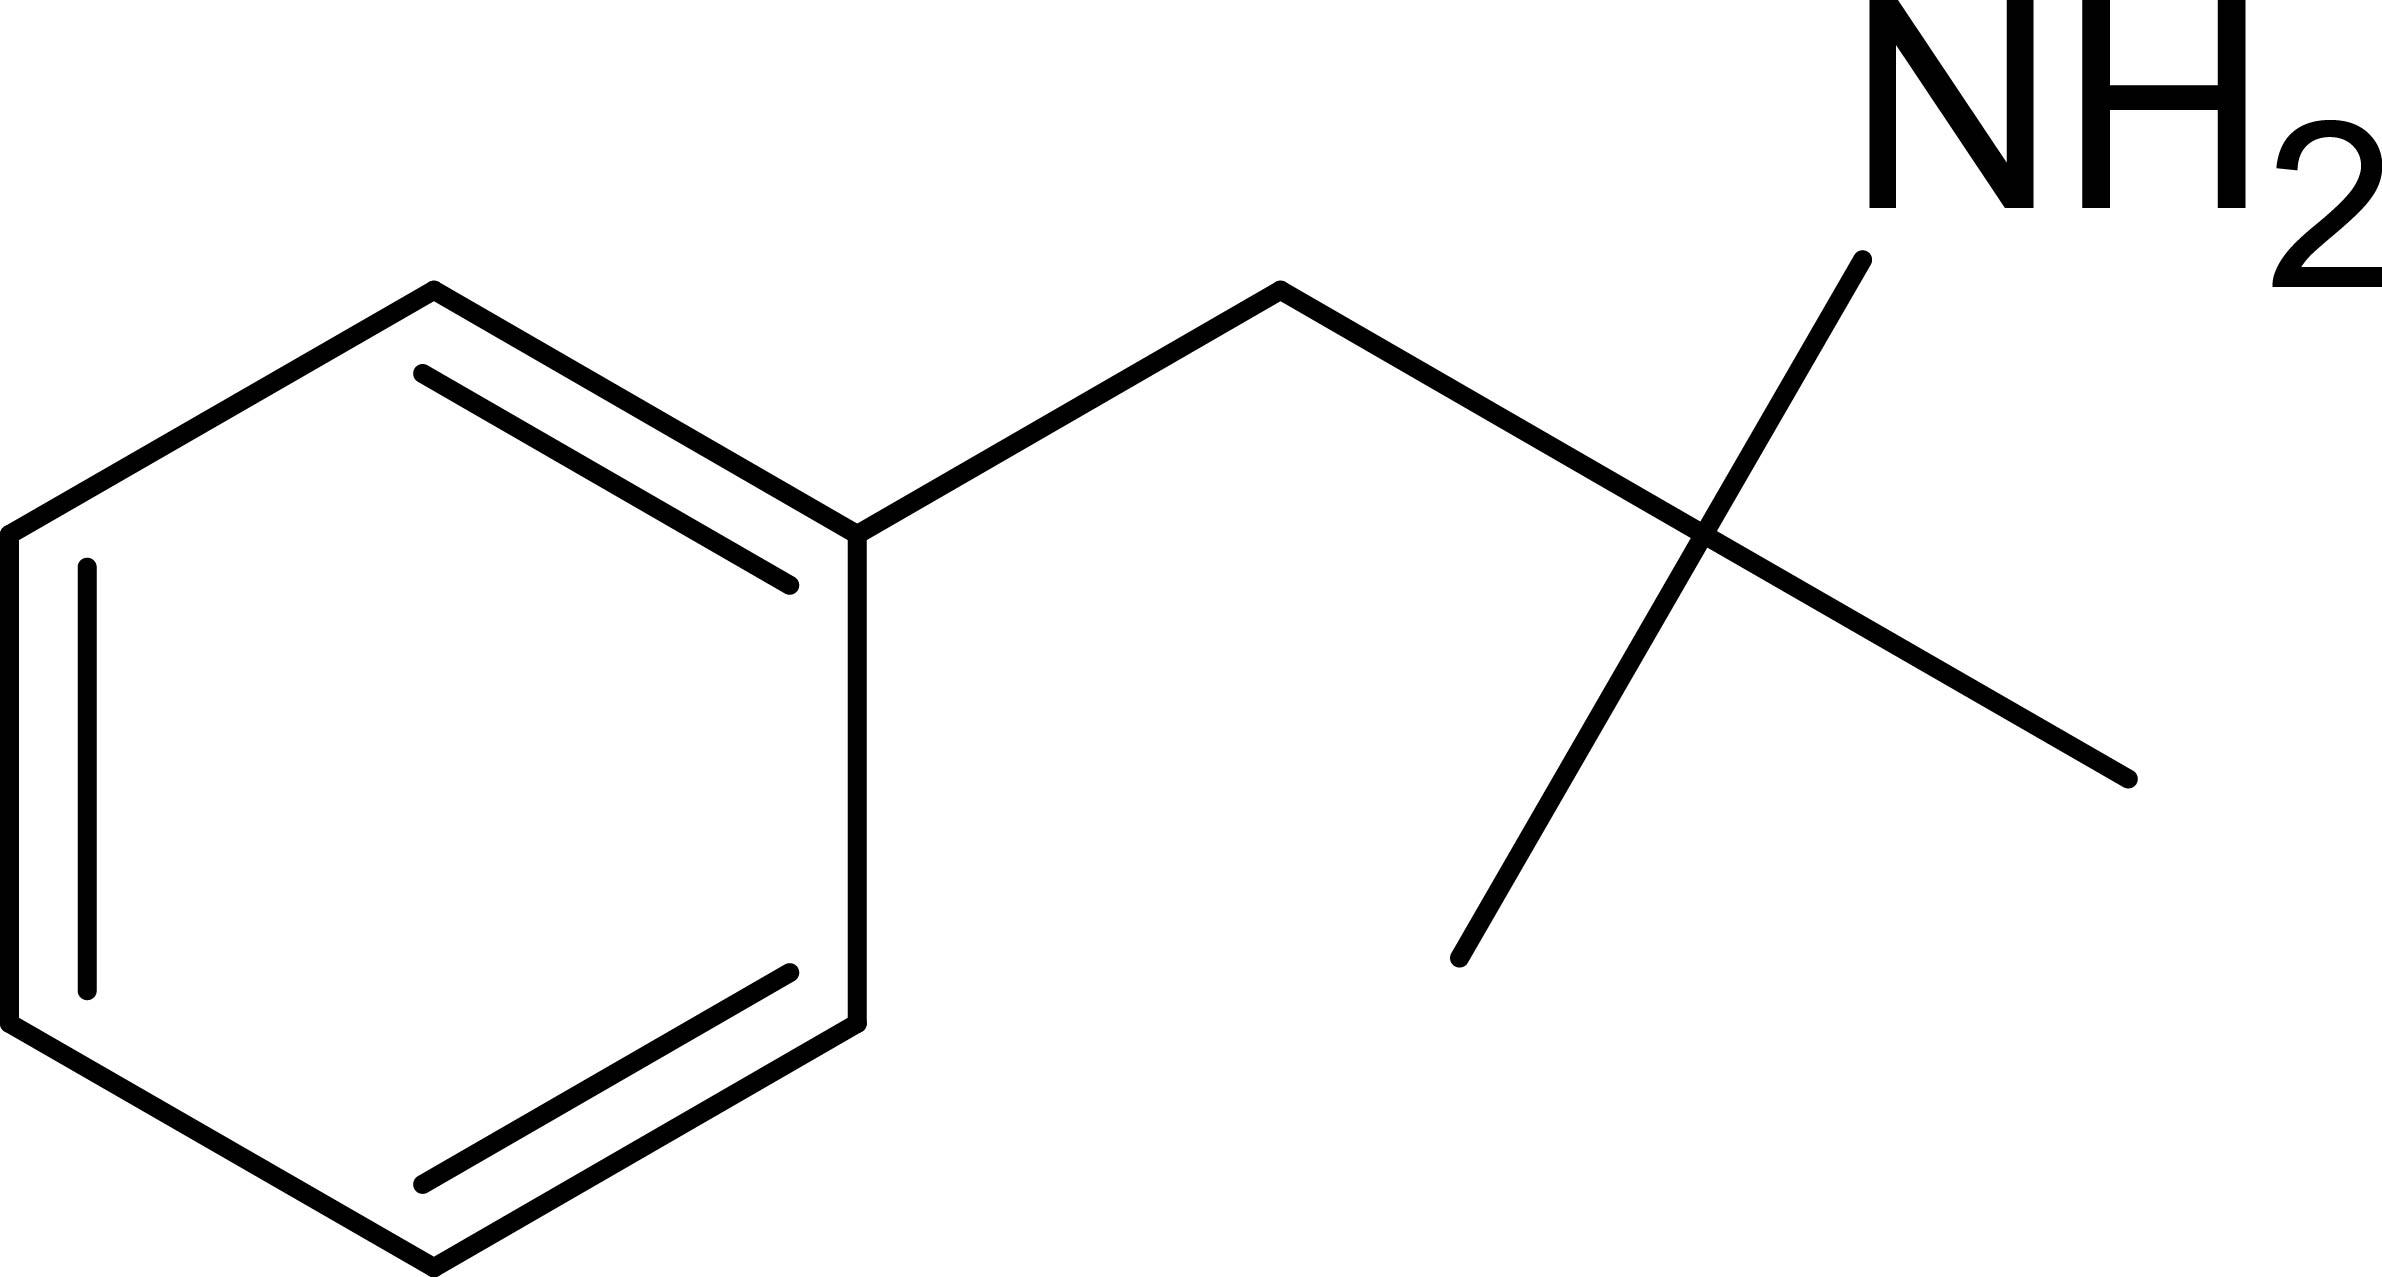 Baclofen for sale